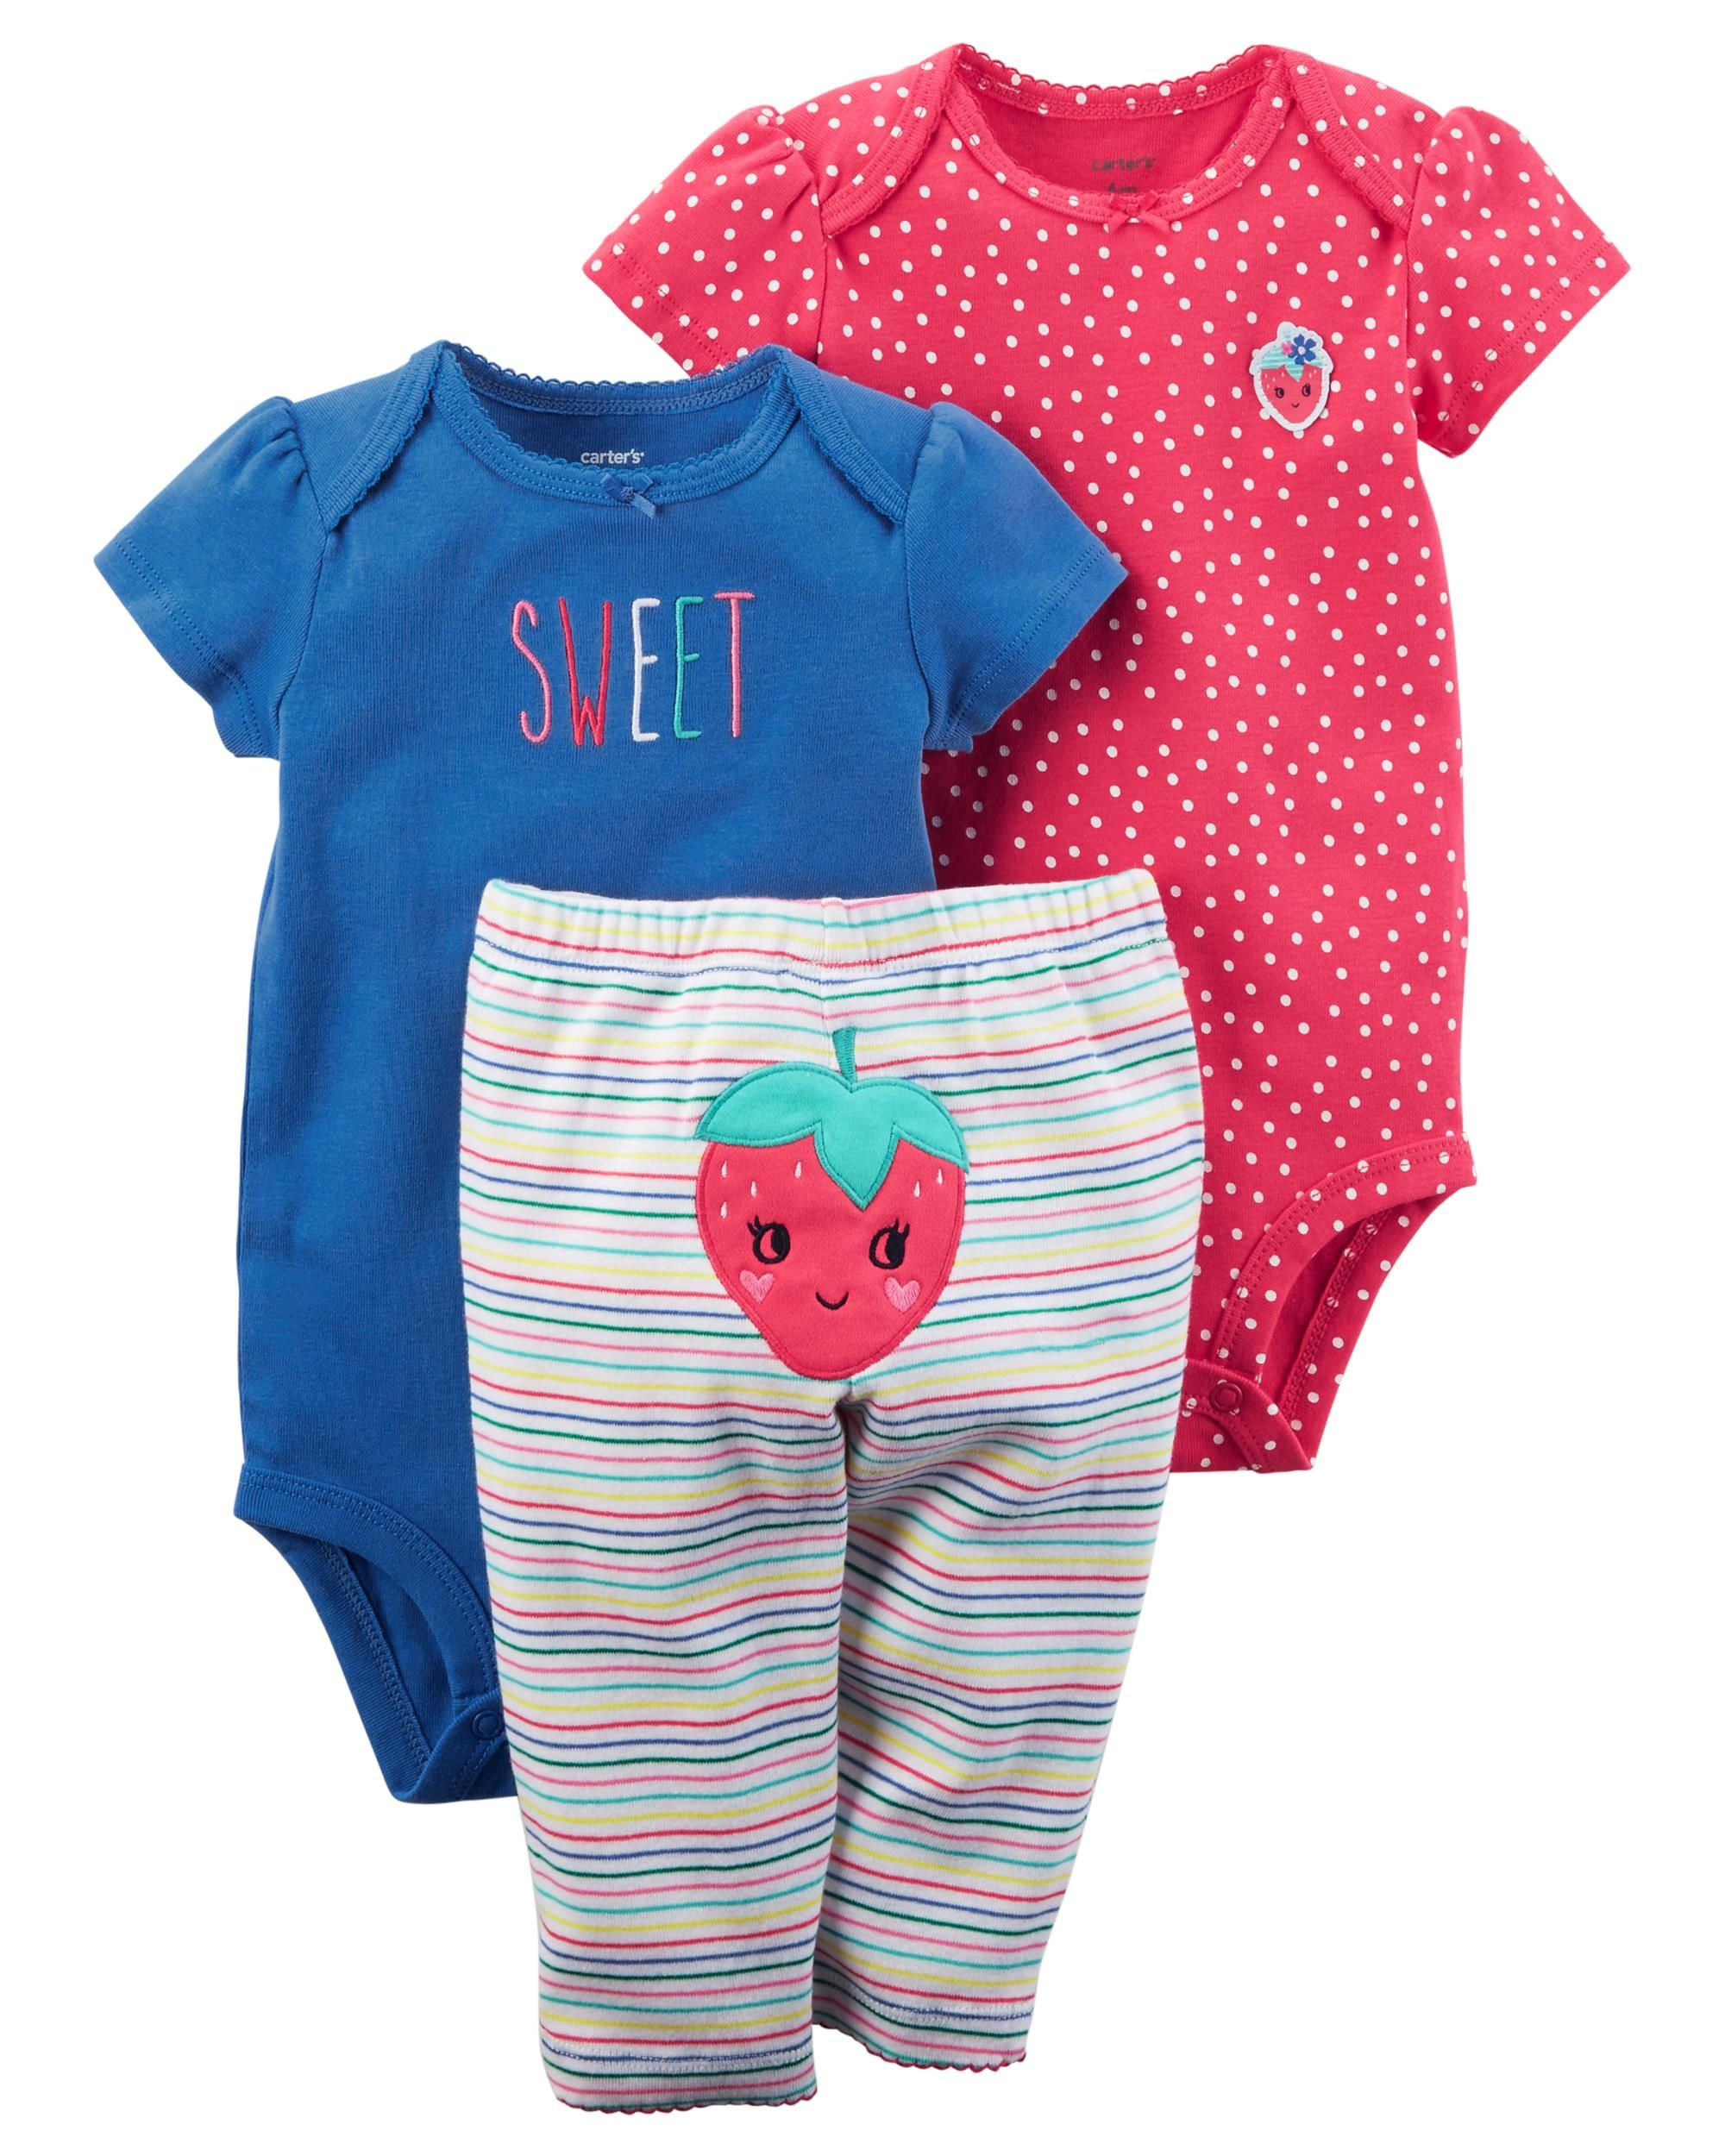 Kid s Treasures Baby and toddler clothing baby essentials